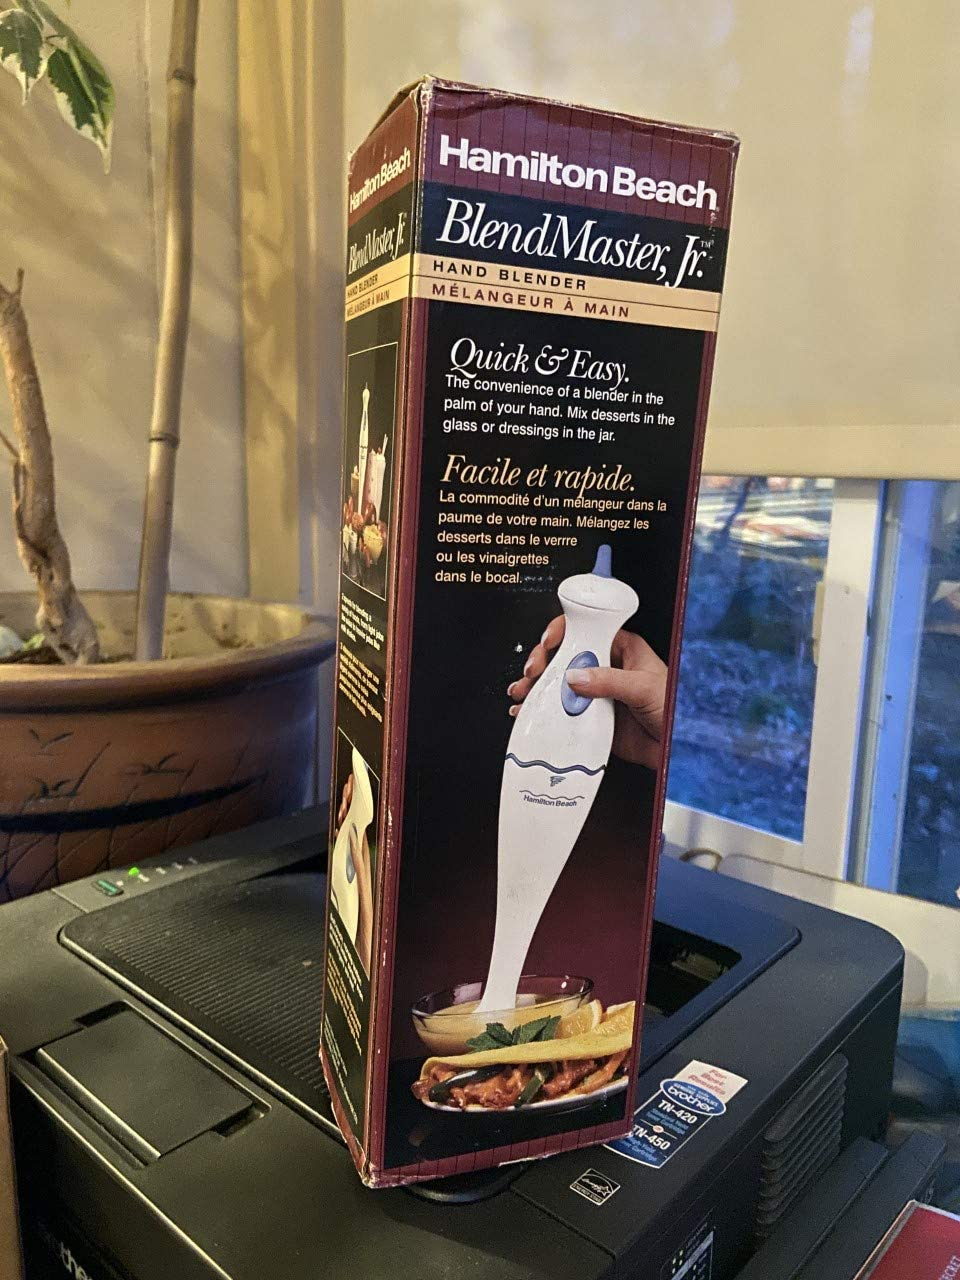 Hamilton Beach Hand Blender Delivers More Taste, Less Cleanup